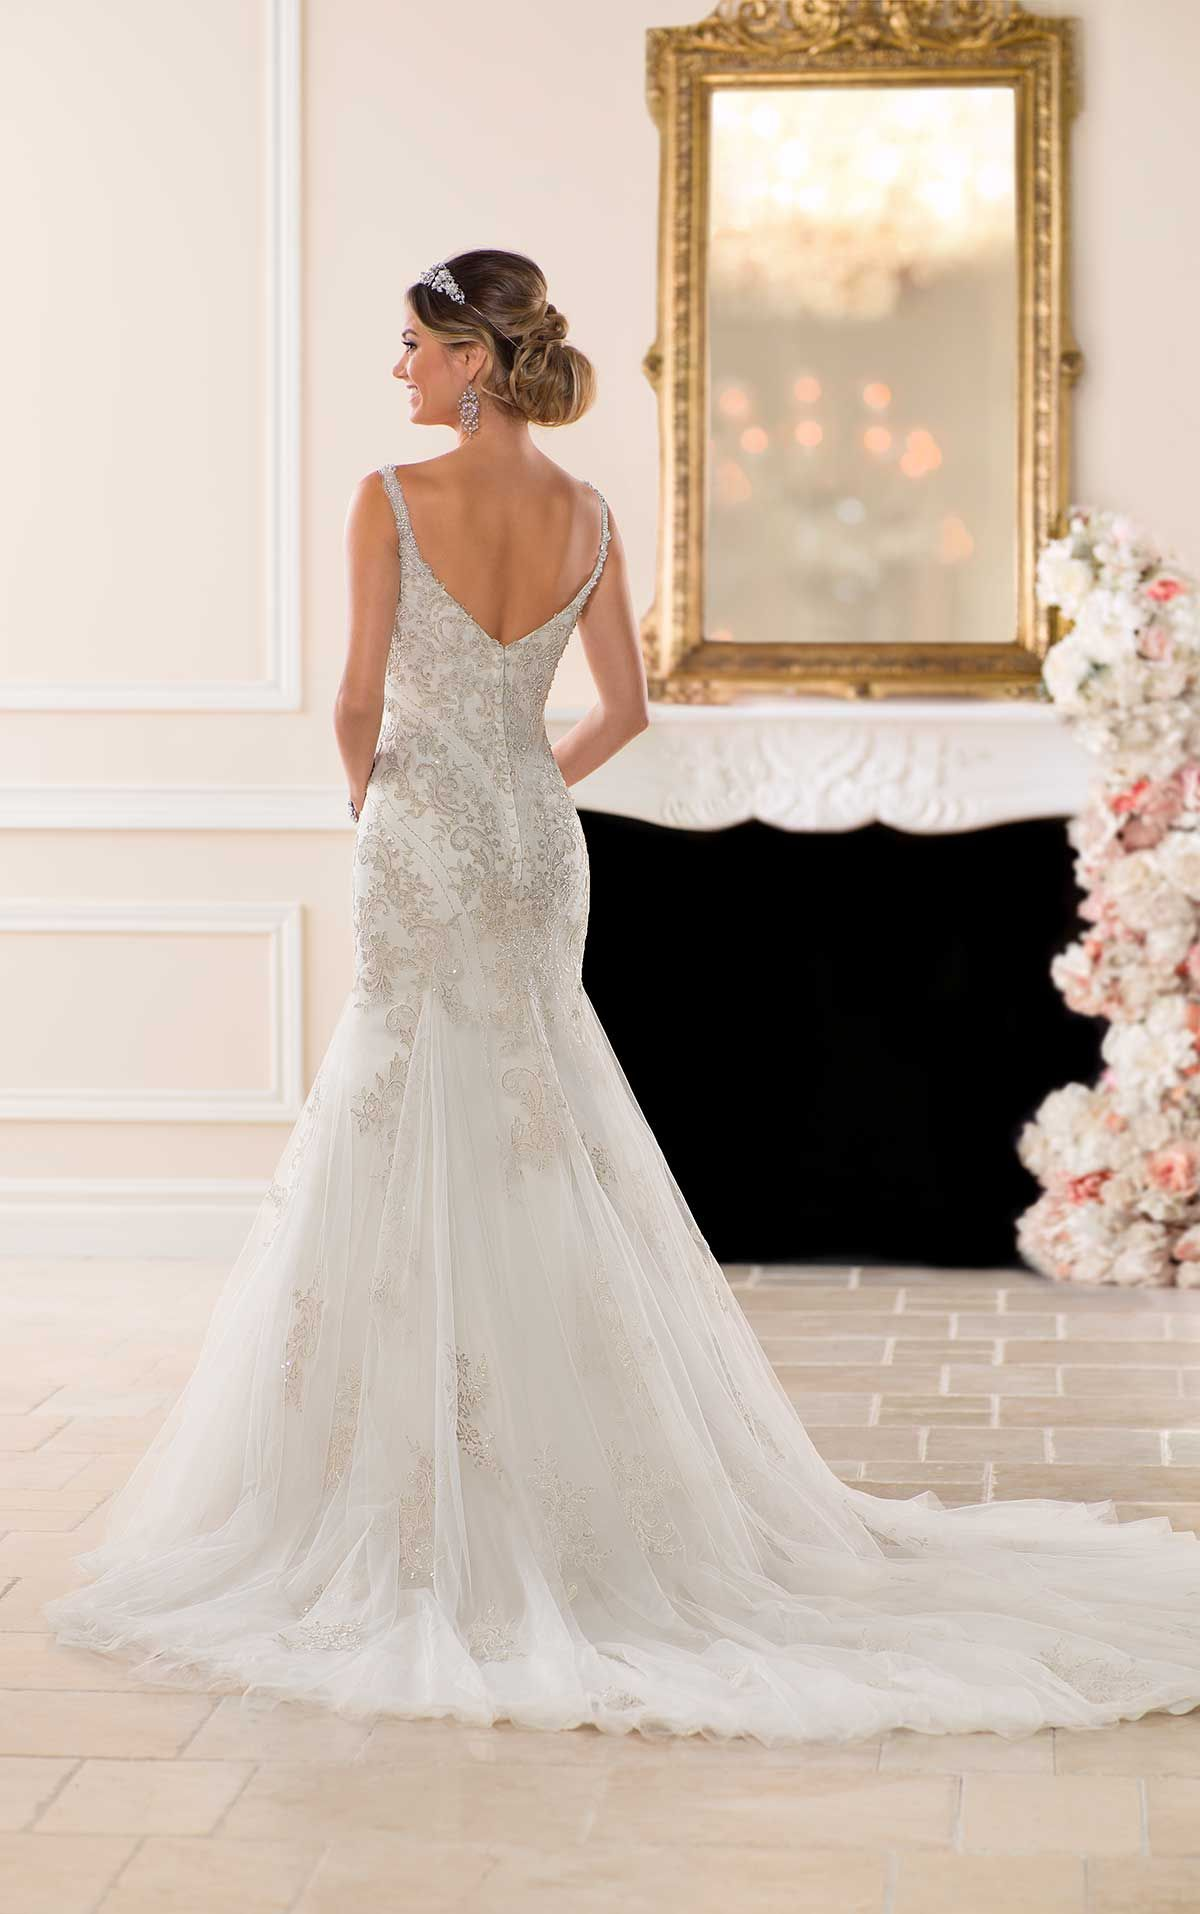 Affordable wedding dresses near me  Trumpet Wedding Dress with Decadent Beading in   Wedding